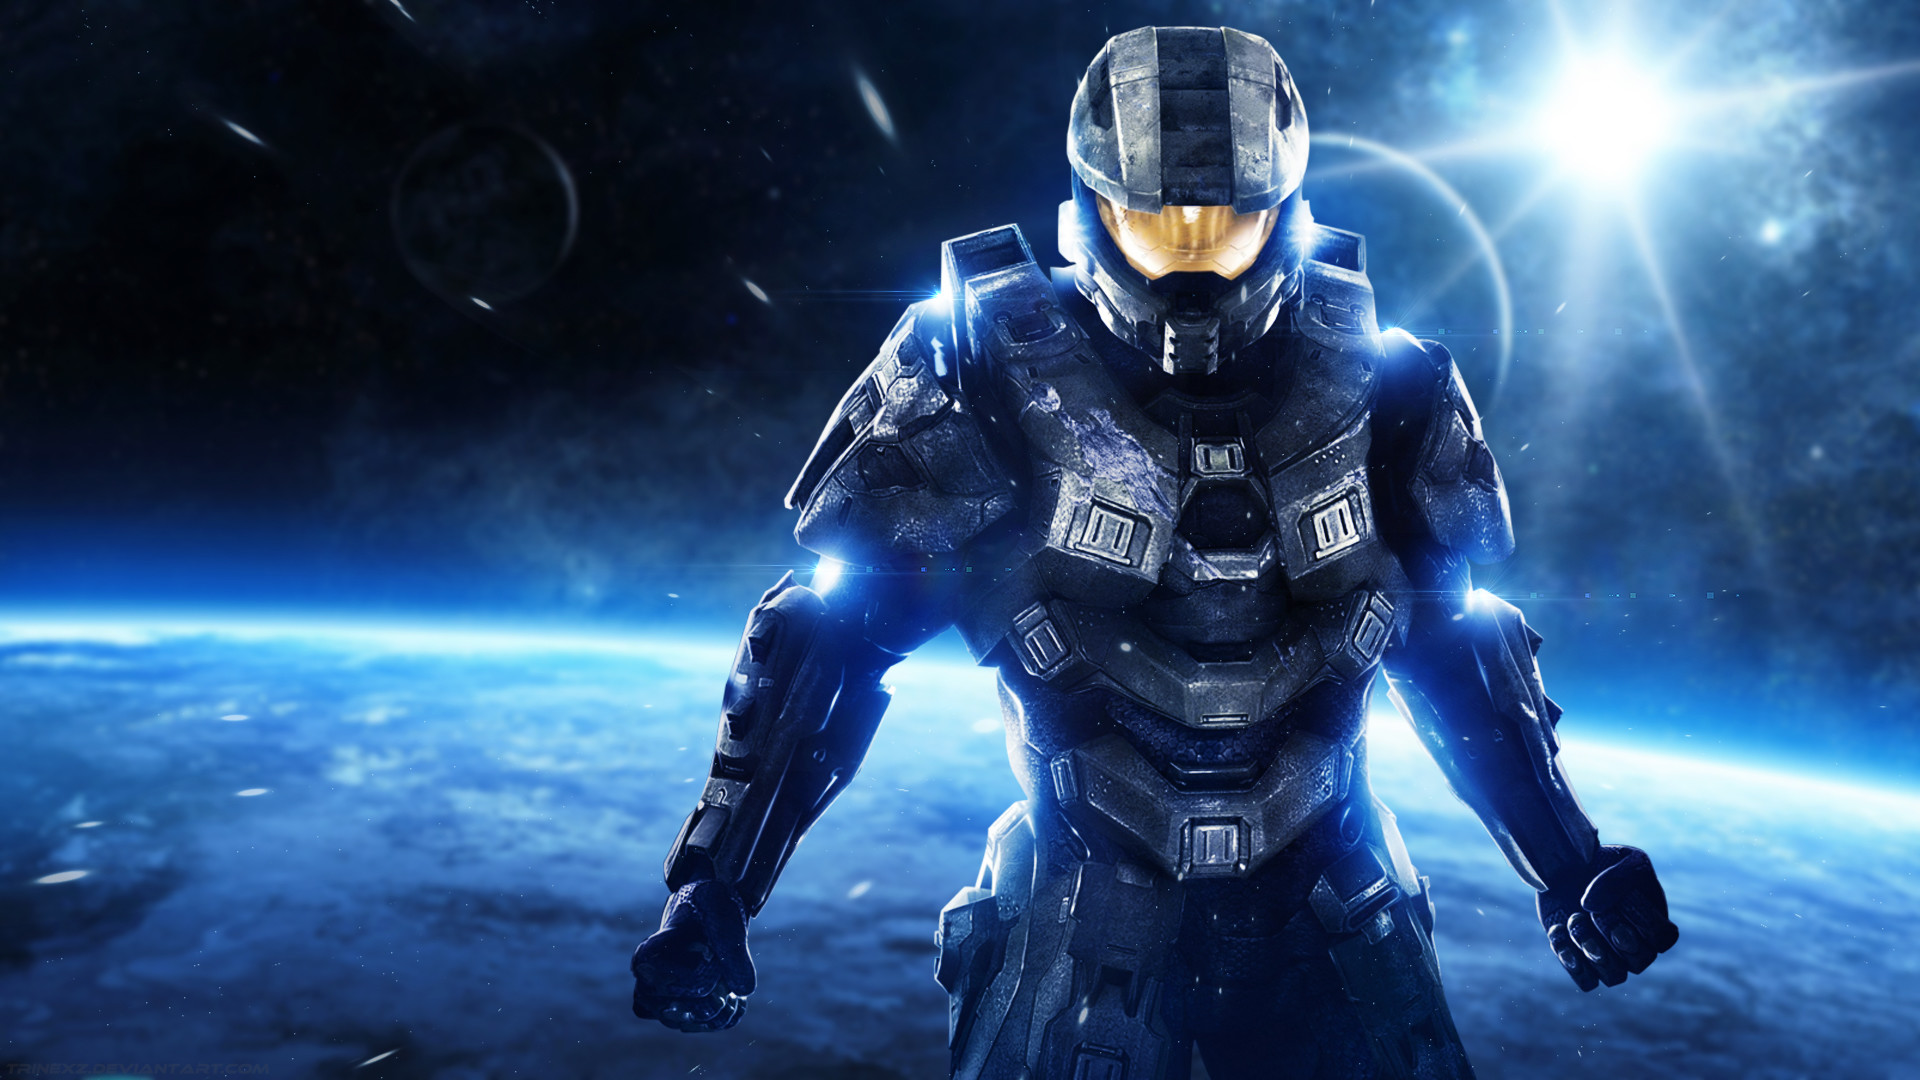 Master Chief 4k Wallpaper 75 Images